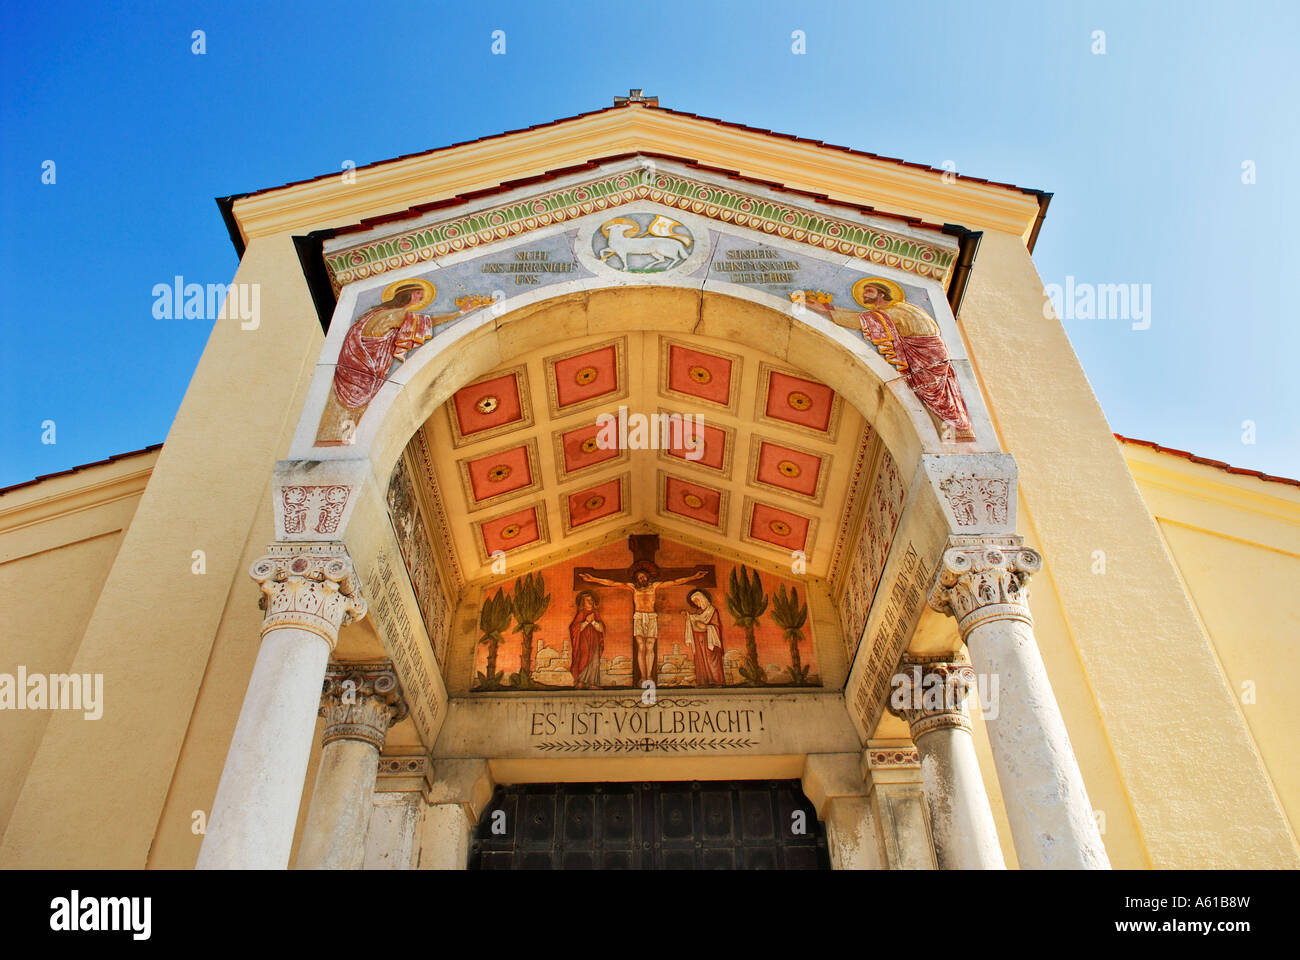 Funeral parlour, North cemetery, Munich, Bavaria, Germany - Stock Image